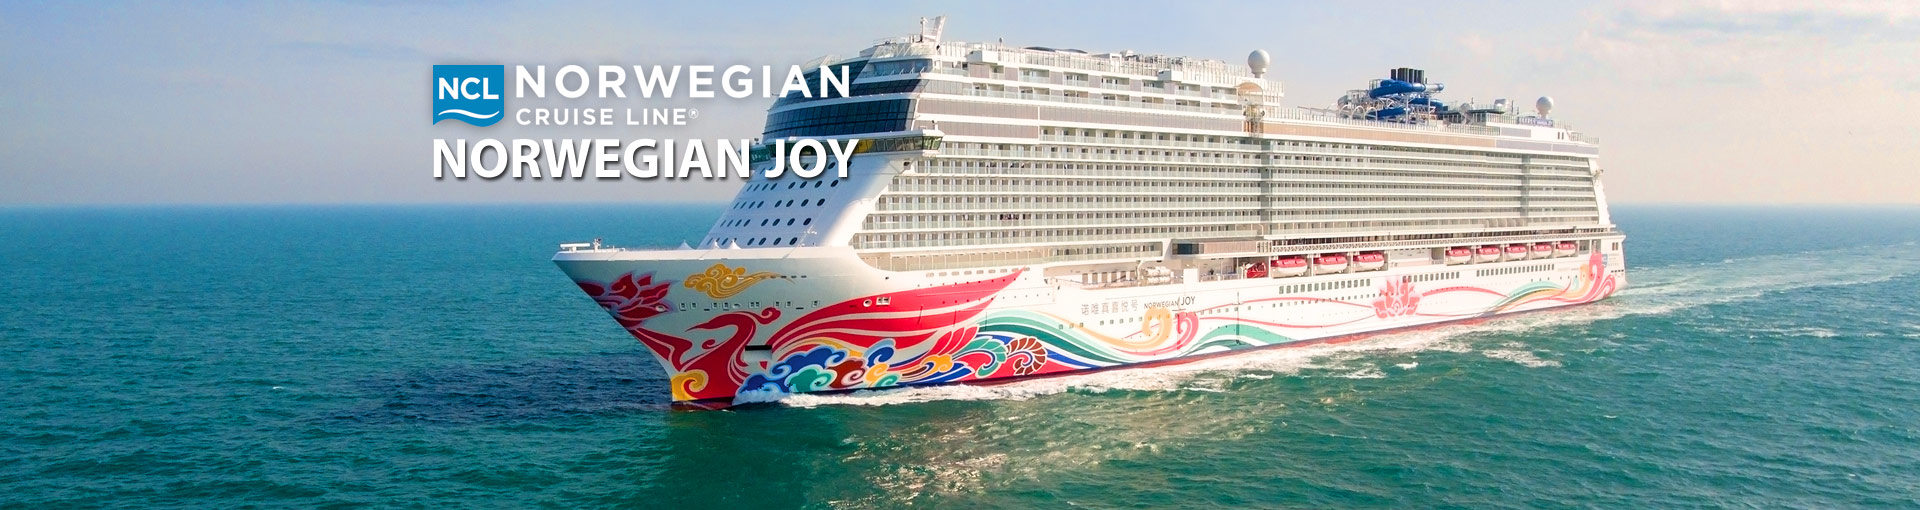 Norwegian Cruise Line Norwegian Joy Cruise Ship